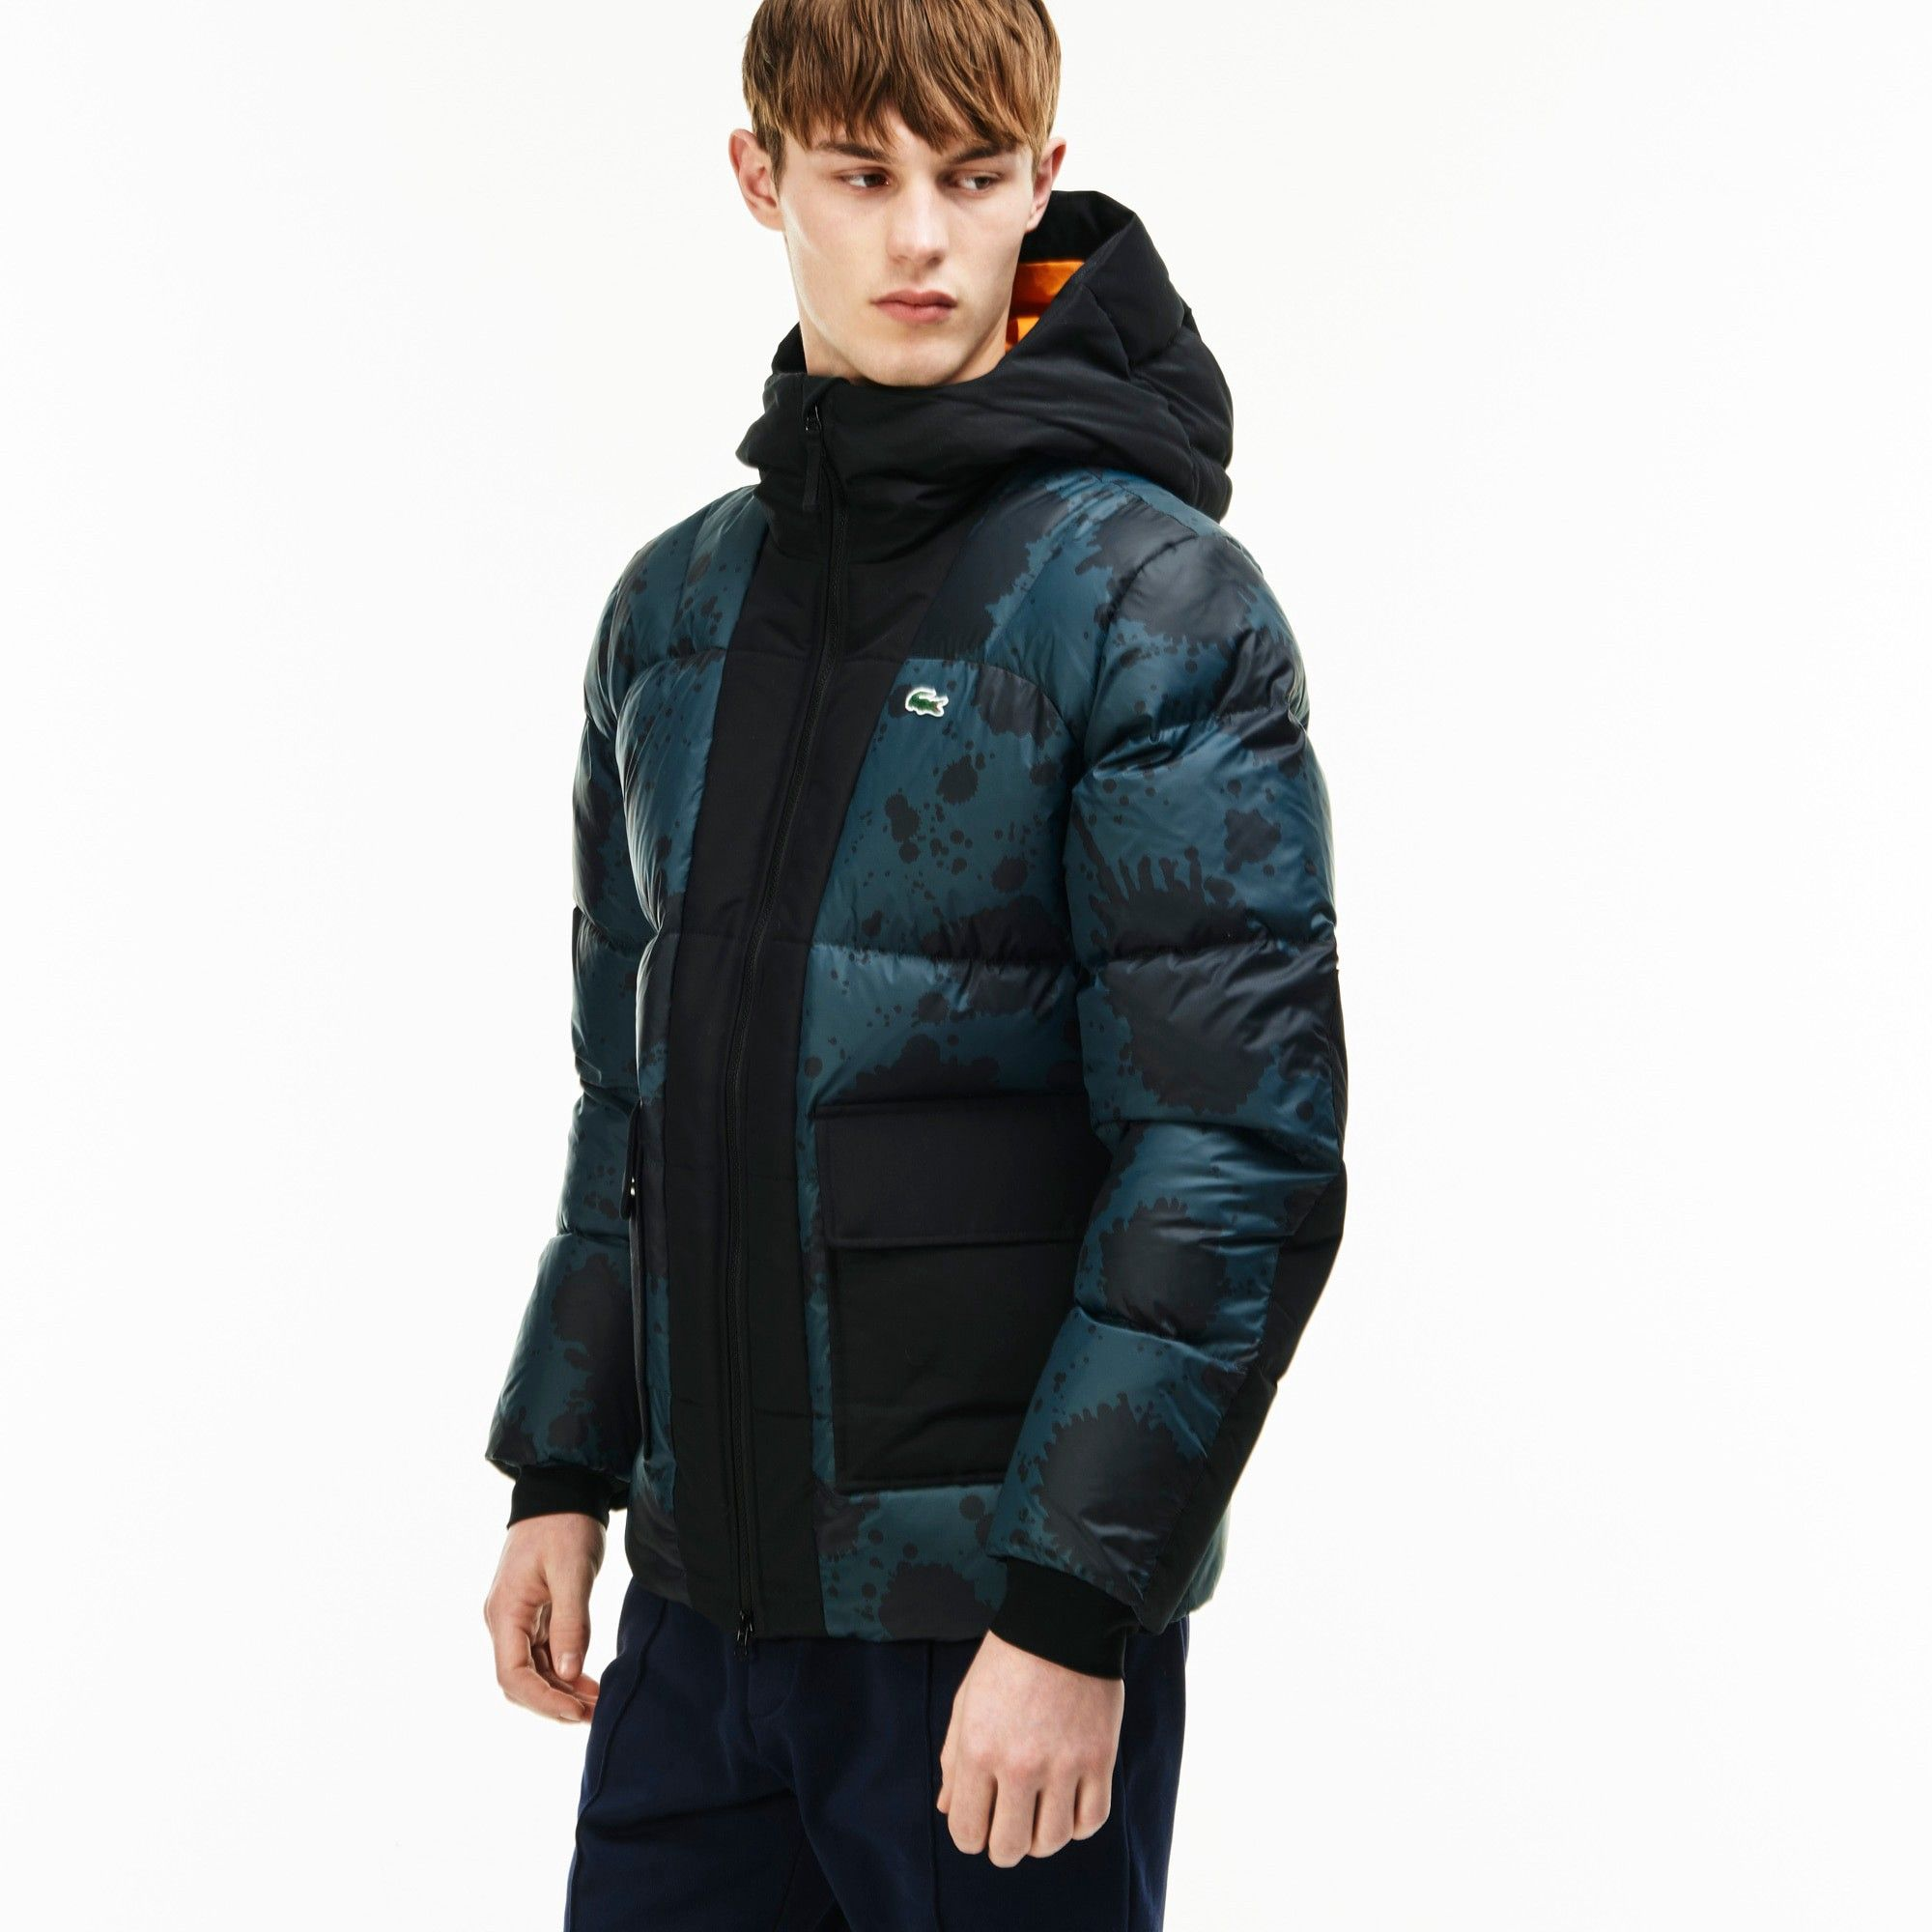 b0bb2877f9 LACOSTE Men's Lacoste LIVE Hooded Colorblock Quilted Jacket -  BOX/MULTICO-BLACKBOX/MULTICO-BLACK. #lacoste #cloth #